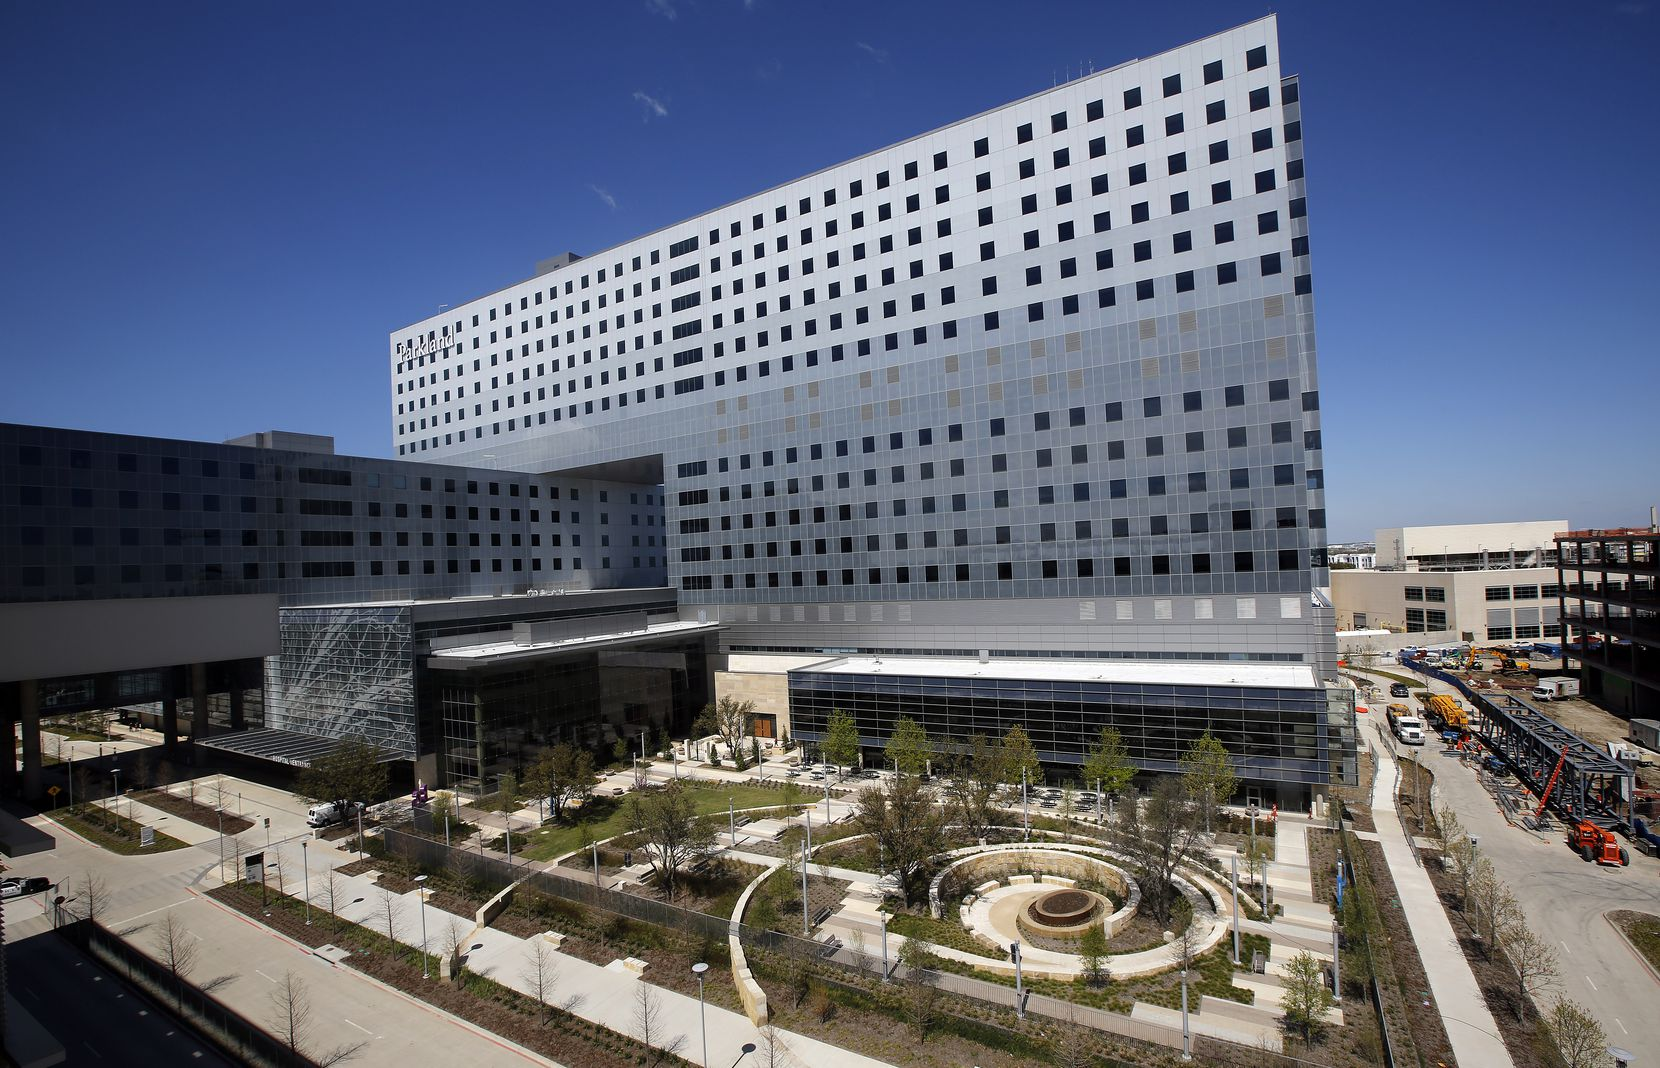 The new Parkland Memorial Hospital was a massive addition to the Dallas landscape.